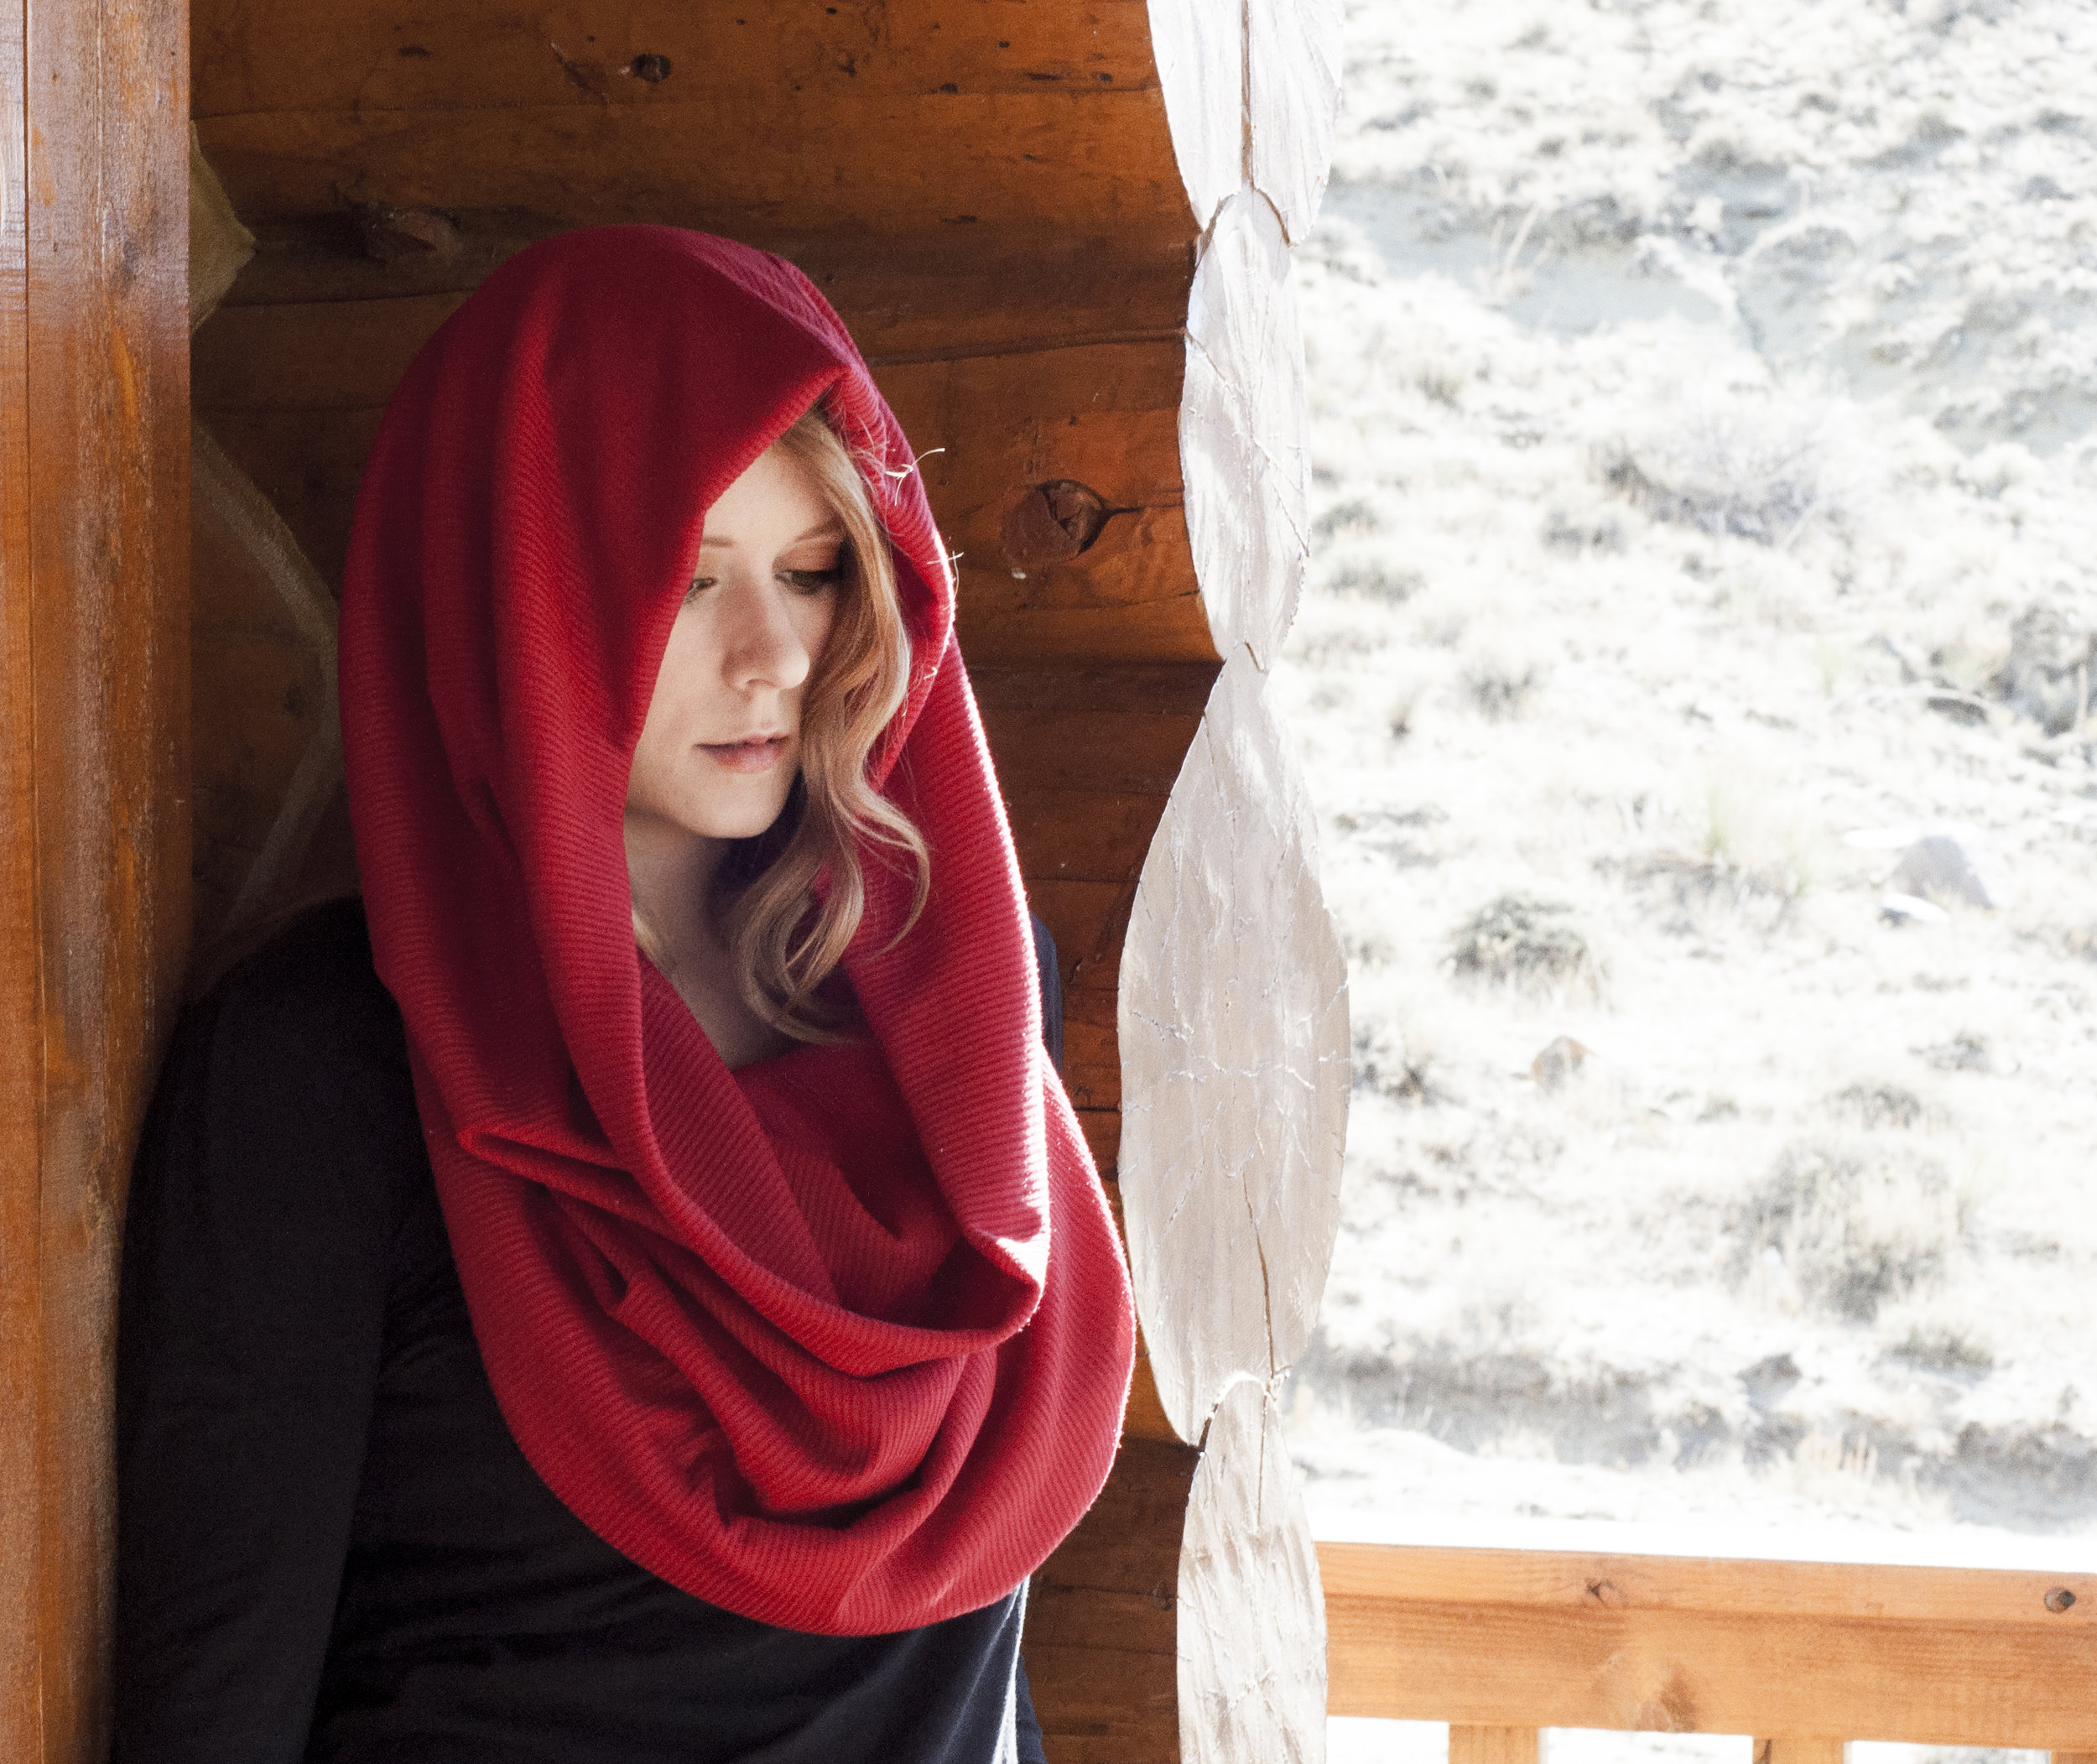 red-infinity-scarf-cowl-oversized-hooded-scarves-women-accessories-forgotten-cotton-etsy.jpg